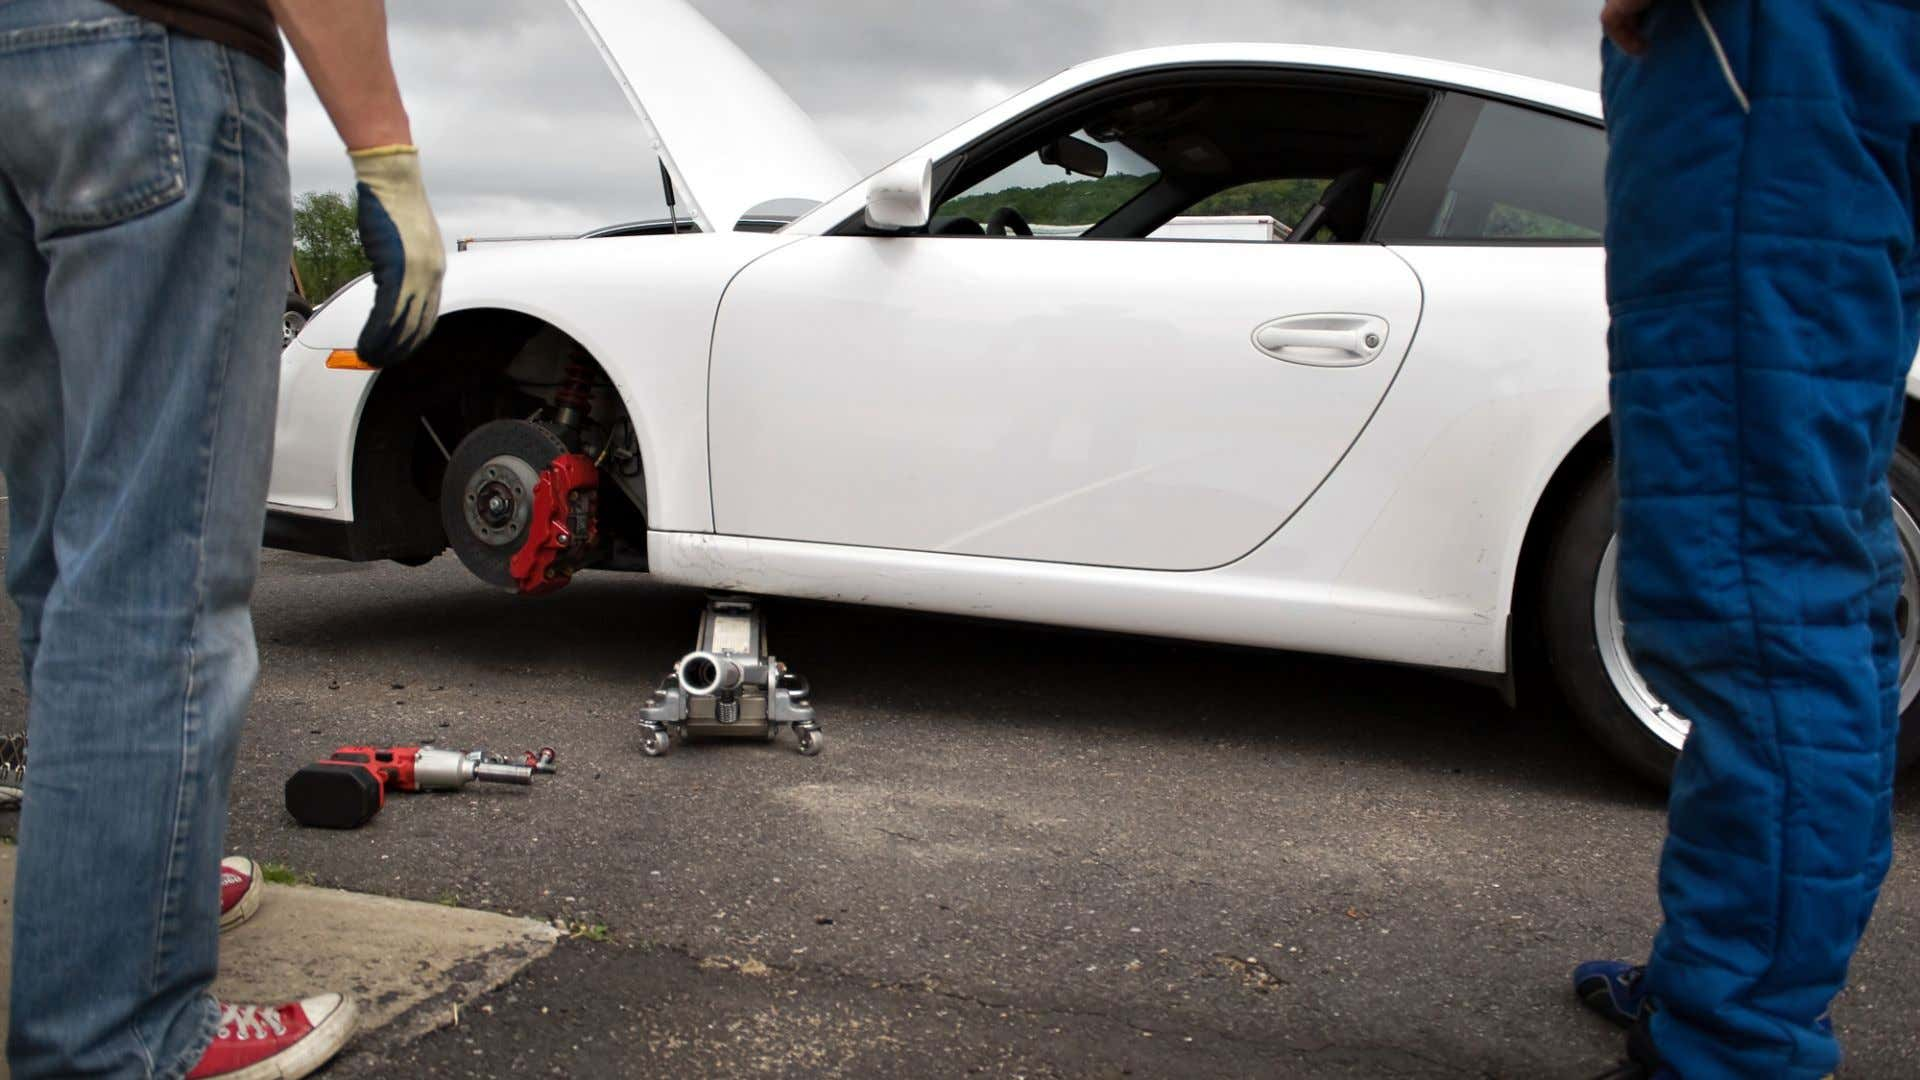 A Porsche's slotted, cross-drilled rotor is exposed.